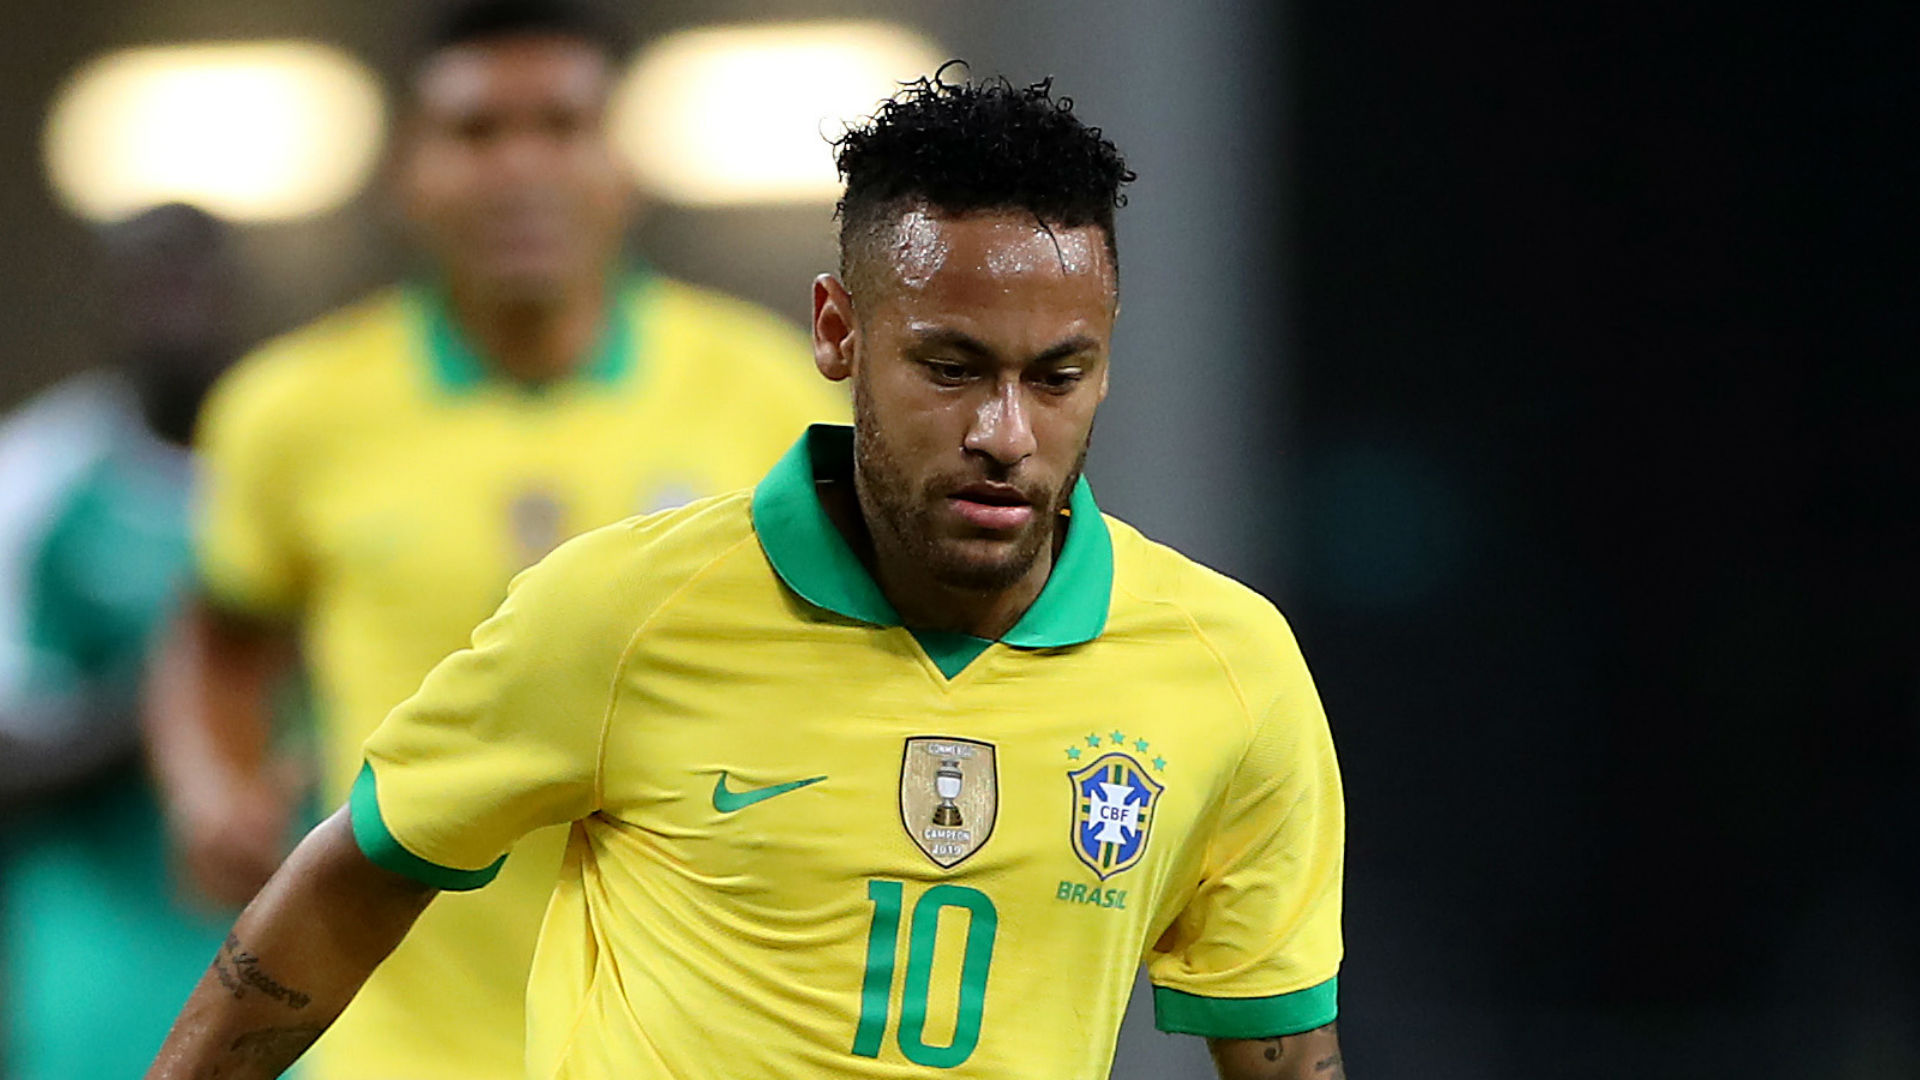 Brazil 1-1 Senegal: Neymar's 100th cap ends in draw